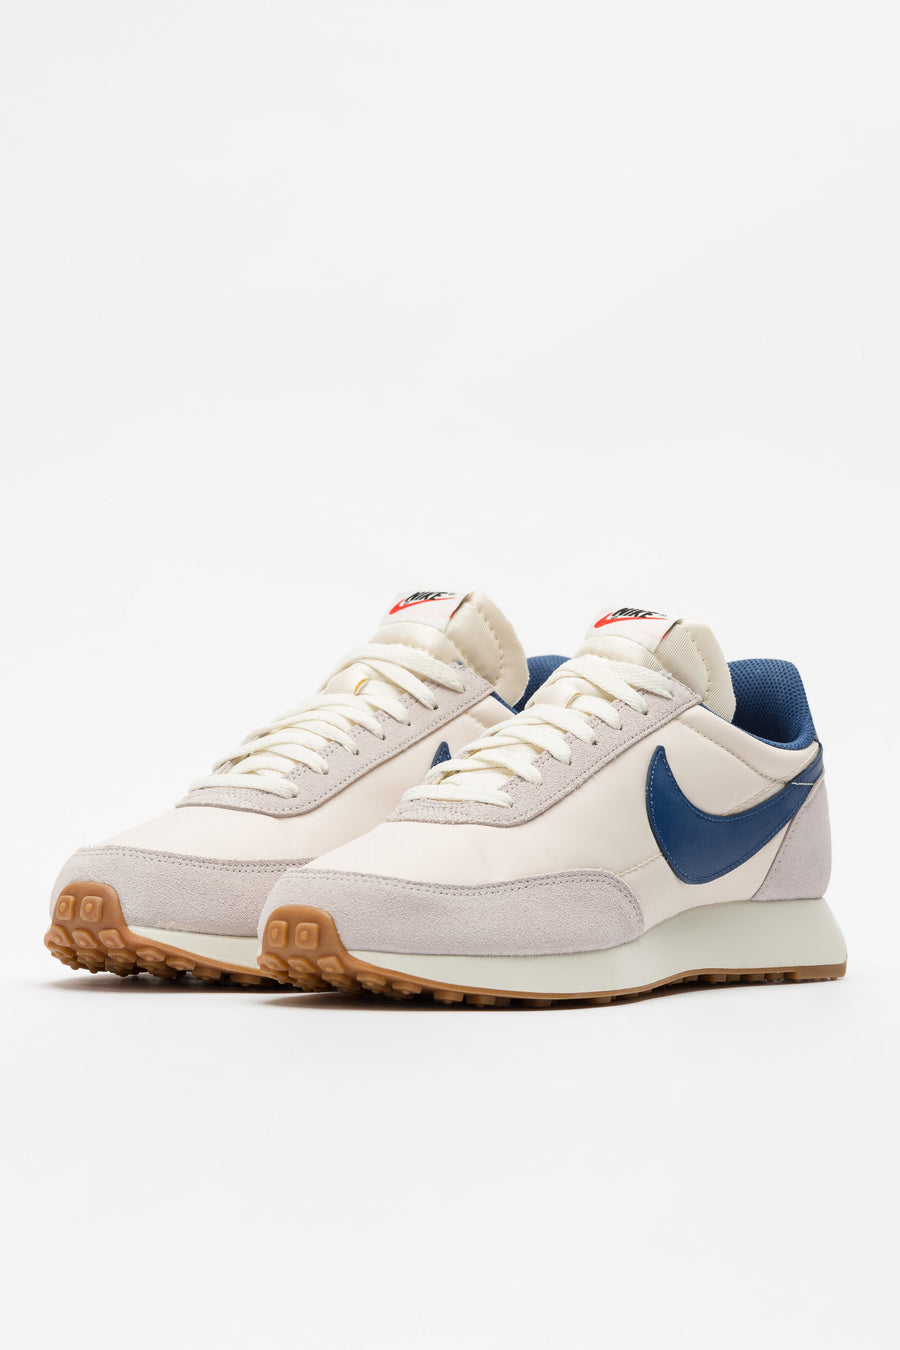 Nike Air Tailwind 79 in Vast Grey/Navy - Notre